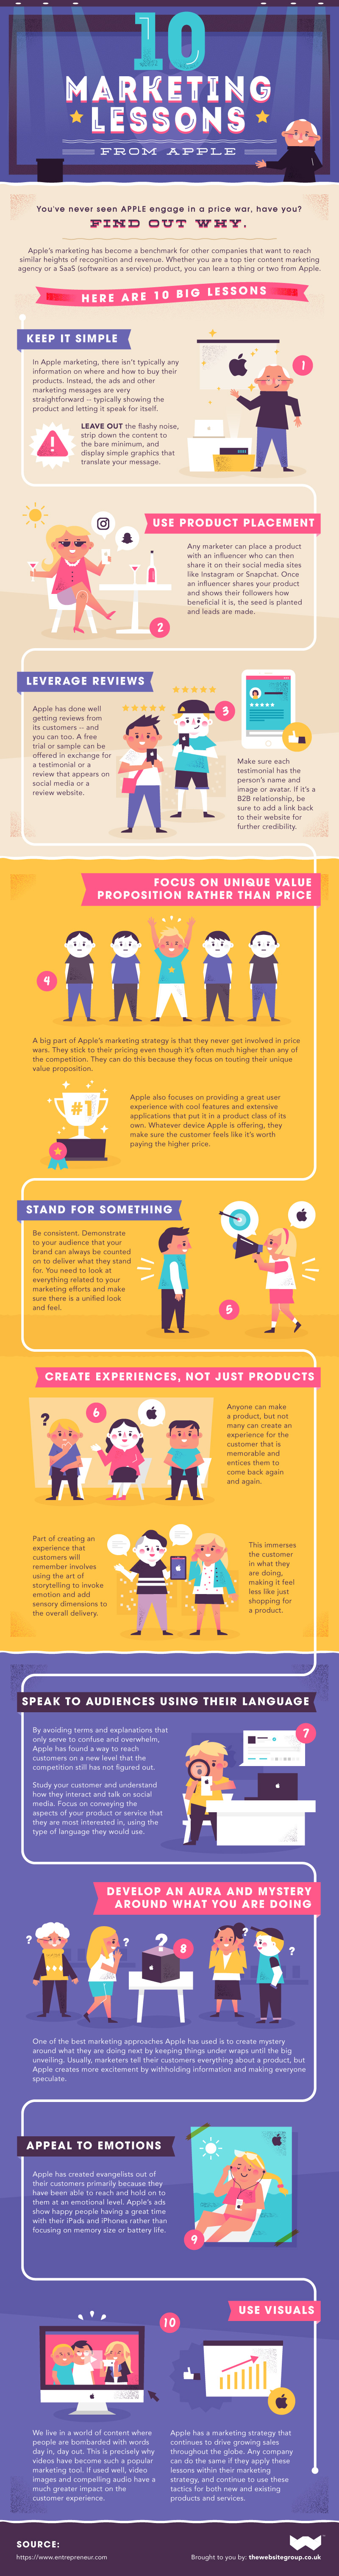 What We Can Learn From Apple - Business Lessons - Infographic